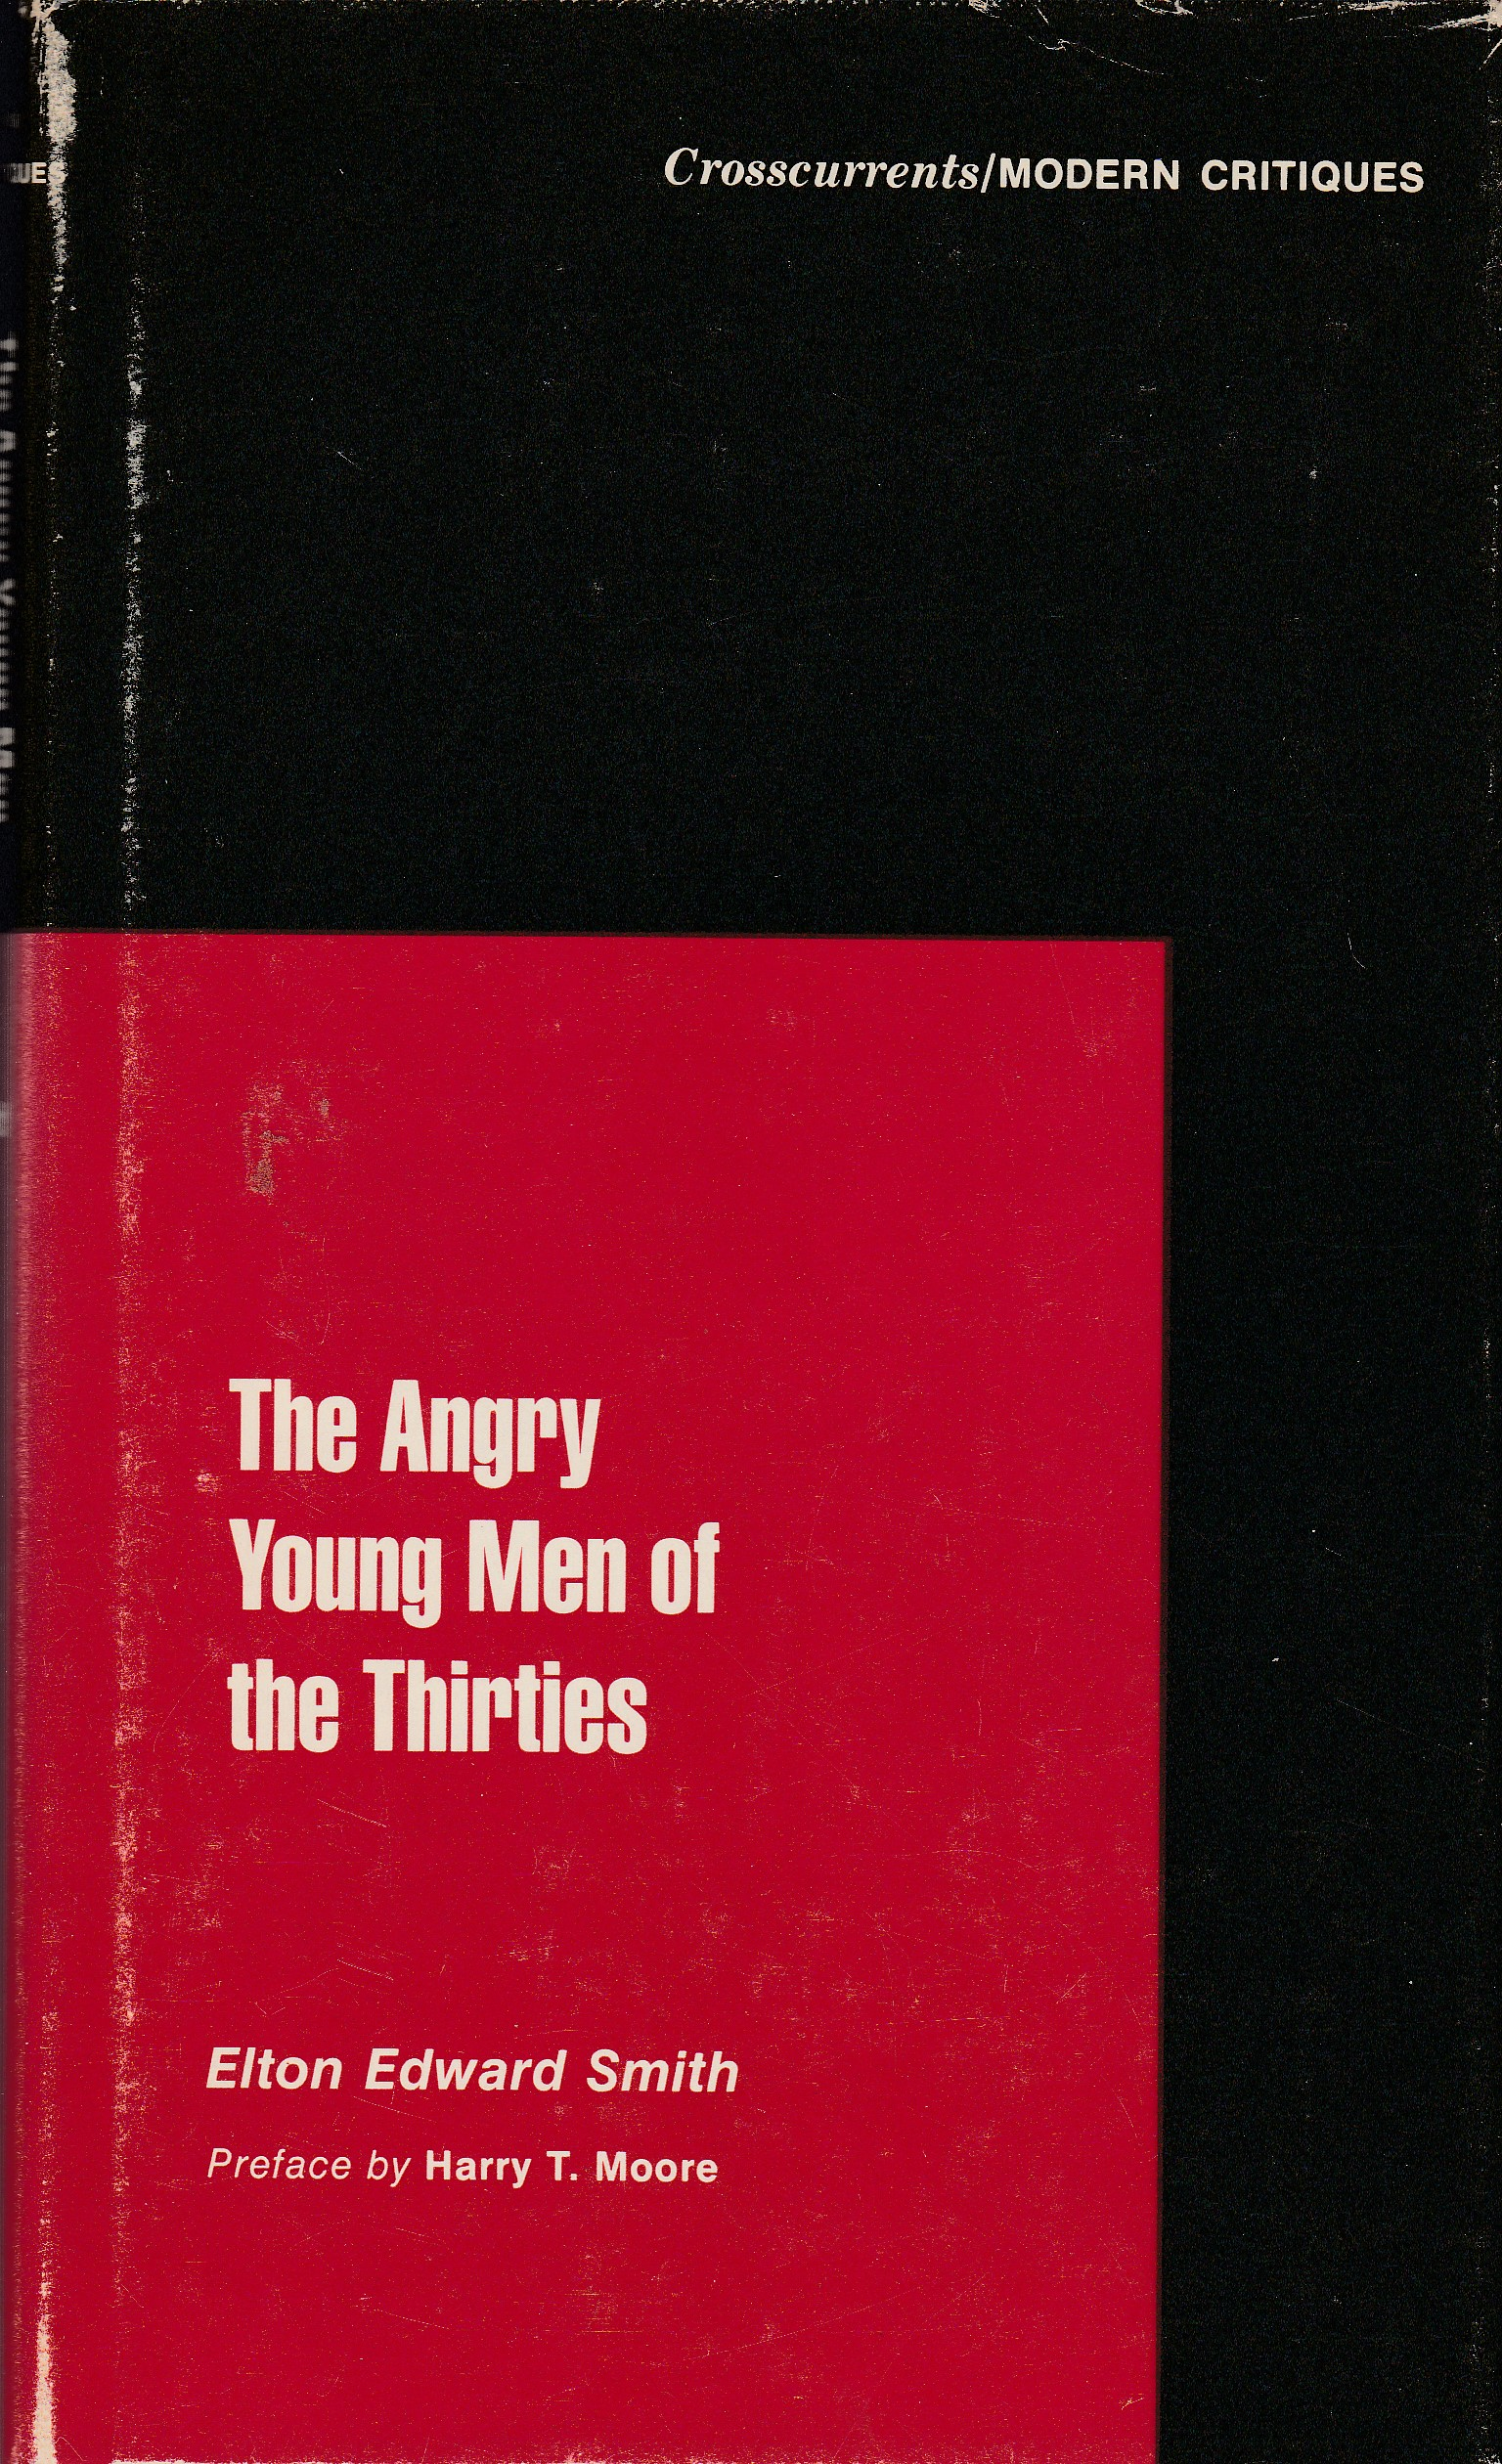 The Angry Young Men of the Thirties